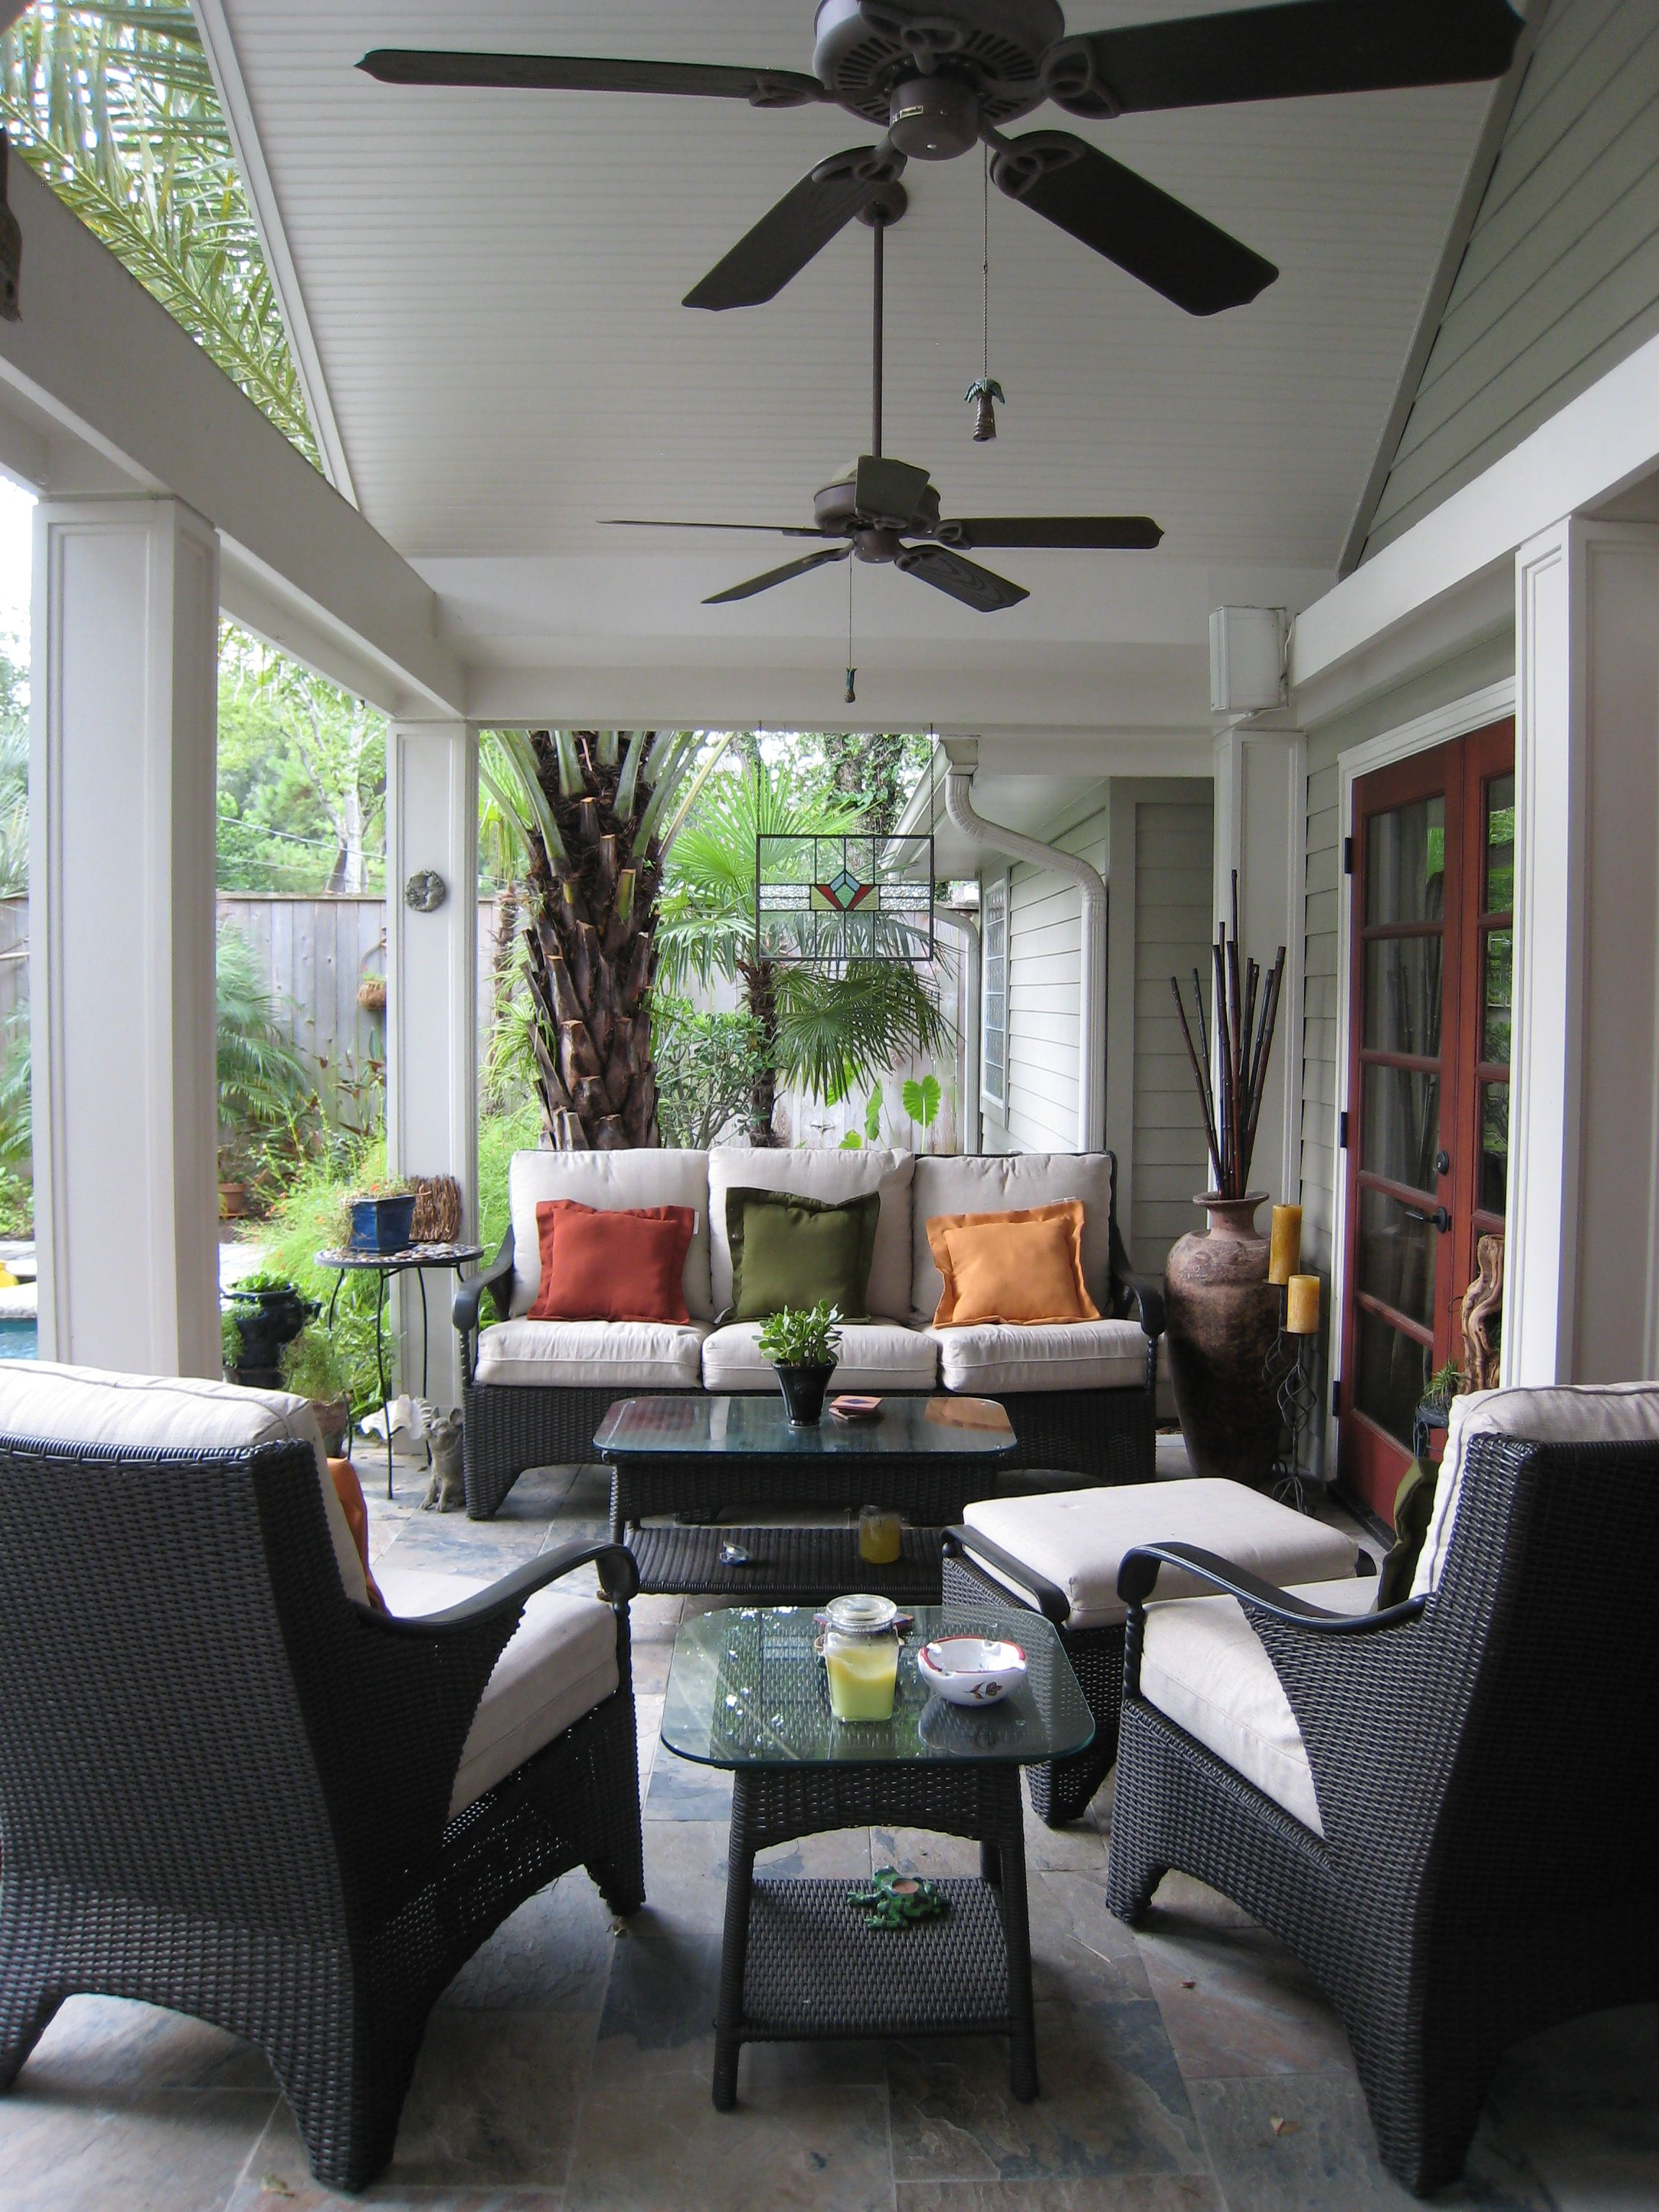 bunch ideas secelectro houston coverings bar outdoor of patio fans easy com gallery for patios